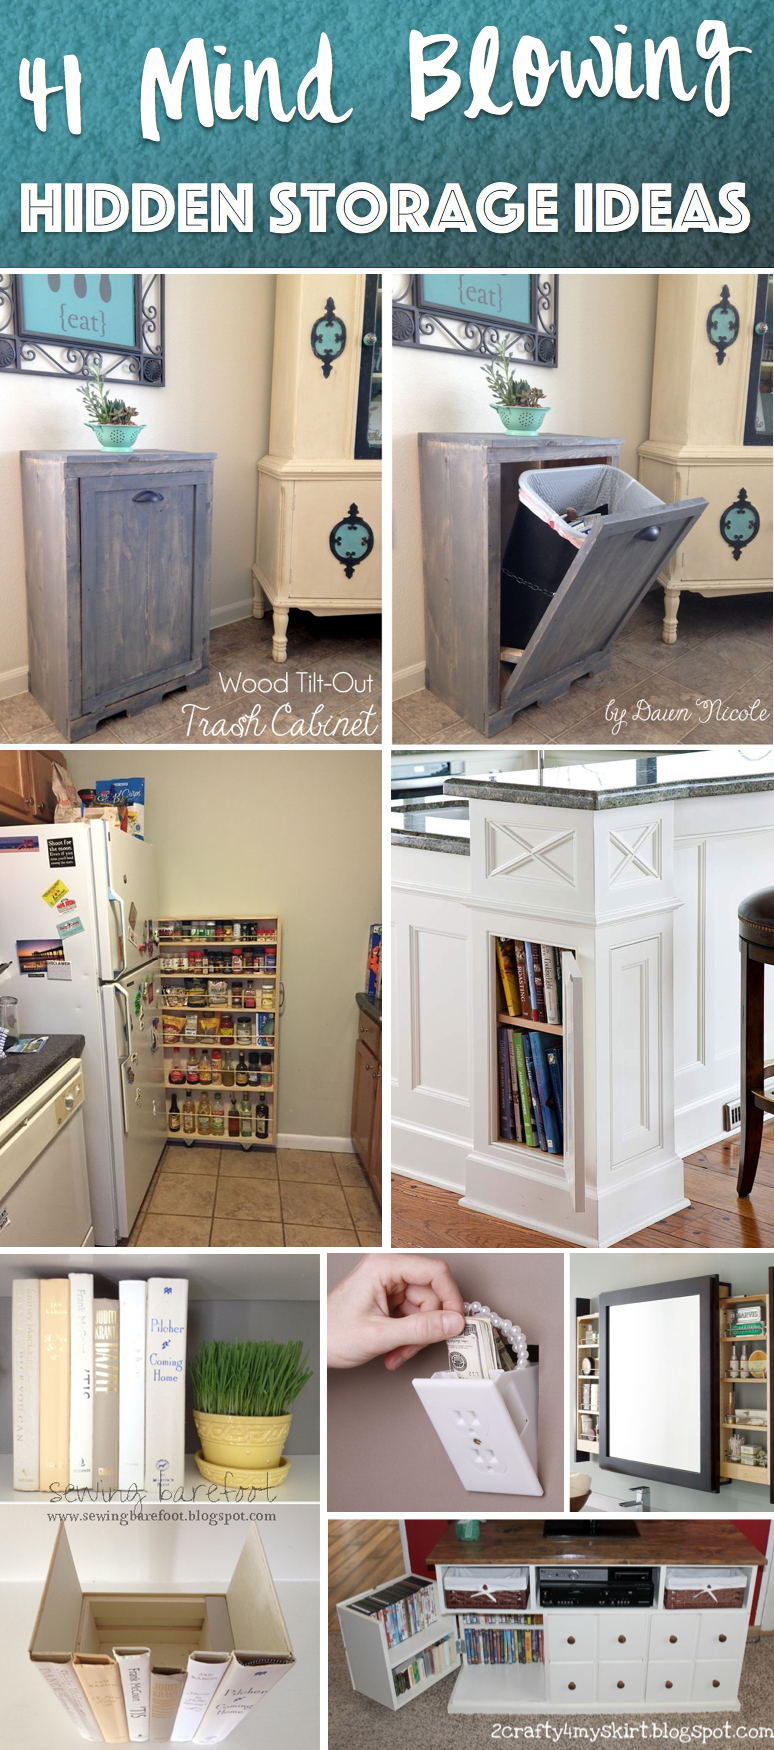 41 Mind Blowing Hidden Storage Ideas Making A Clever Use Of Your Household Space Cute Diy Projects